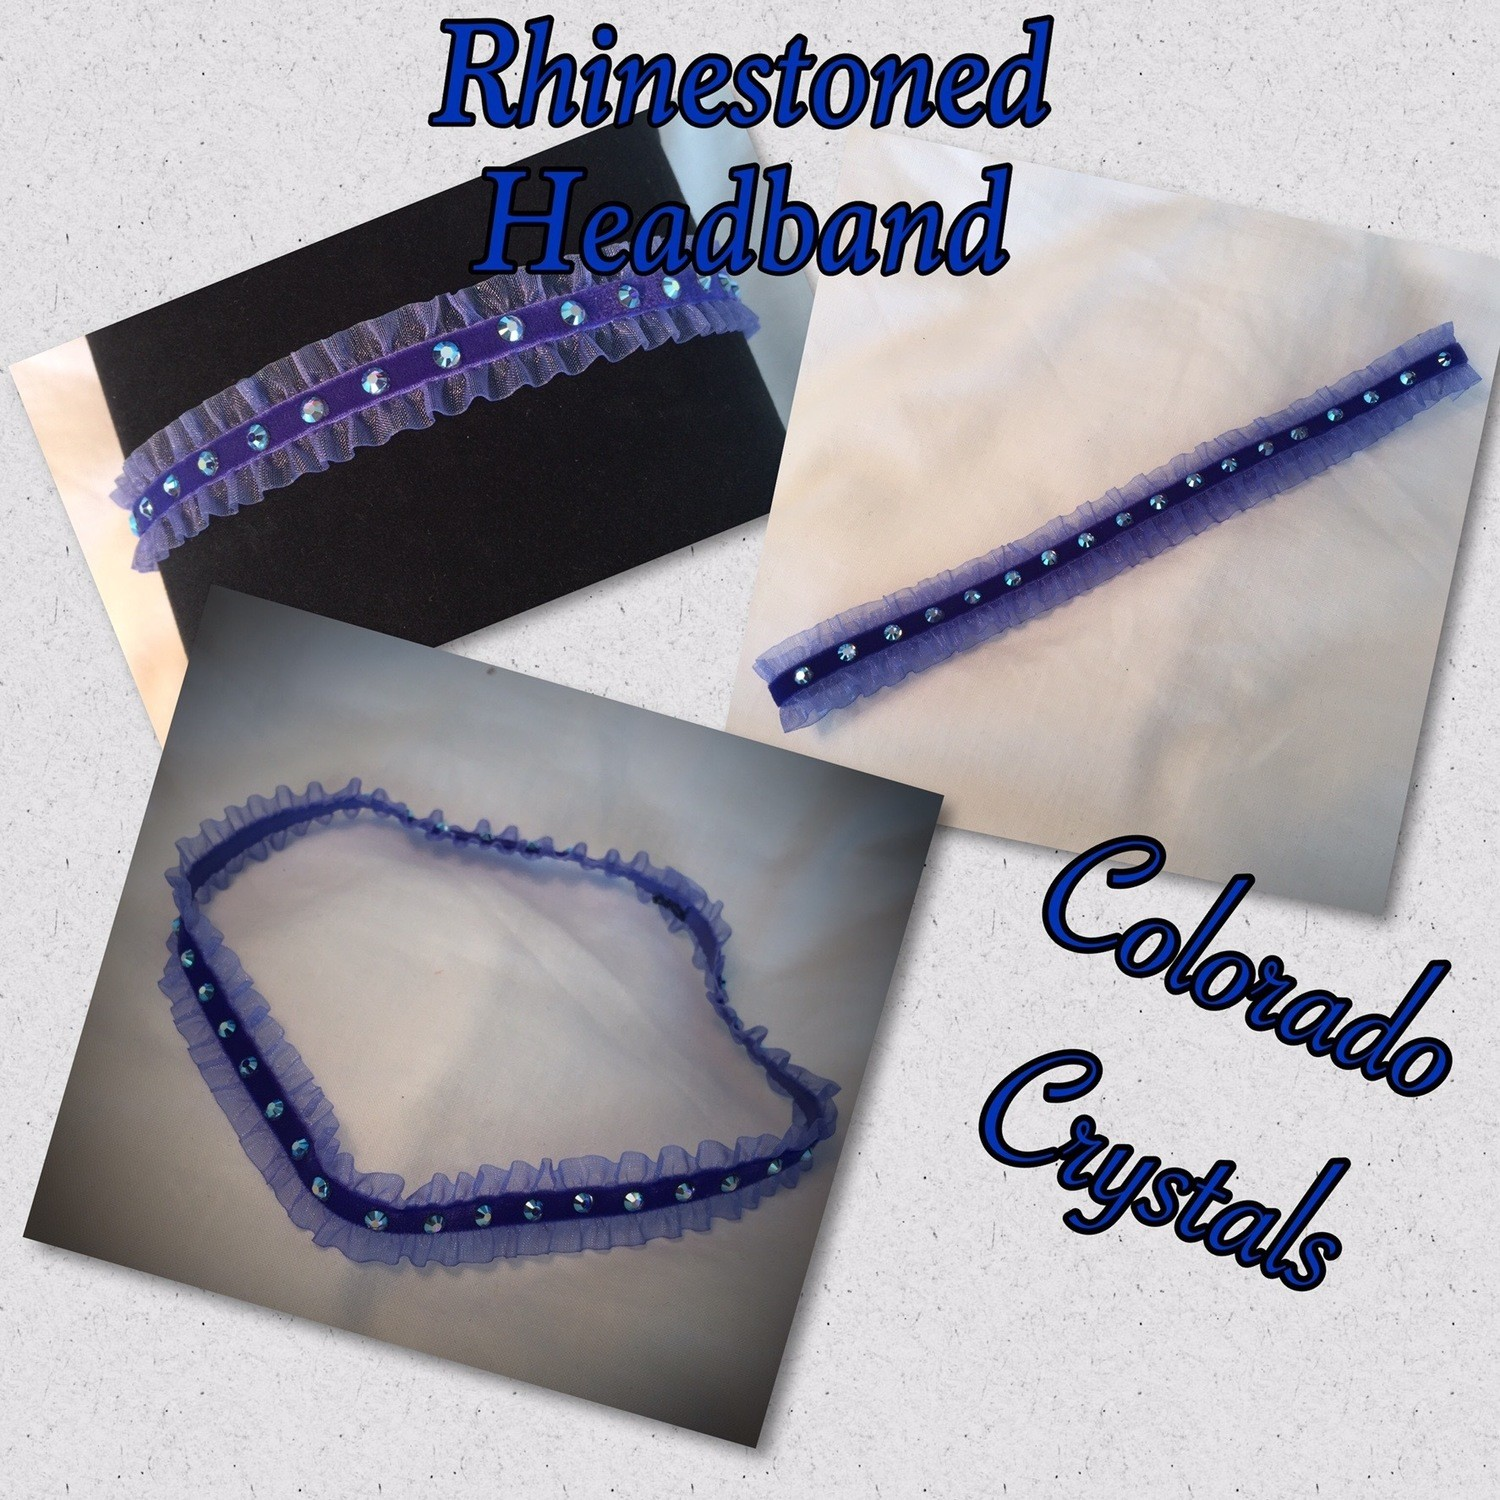 Baby Toddler headband Rhinestoned with Swarovski crystals - Blue